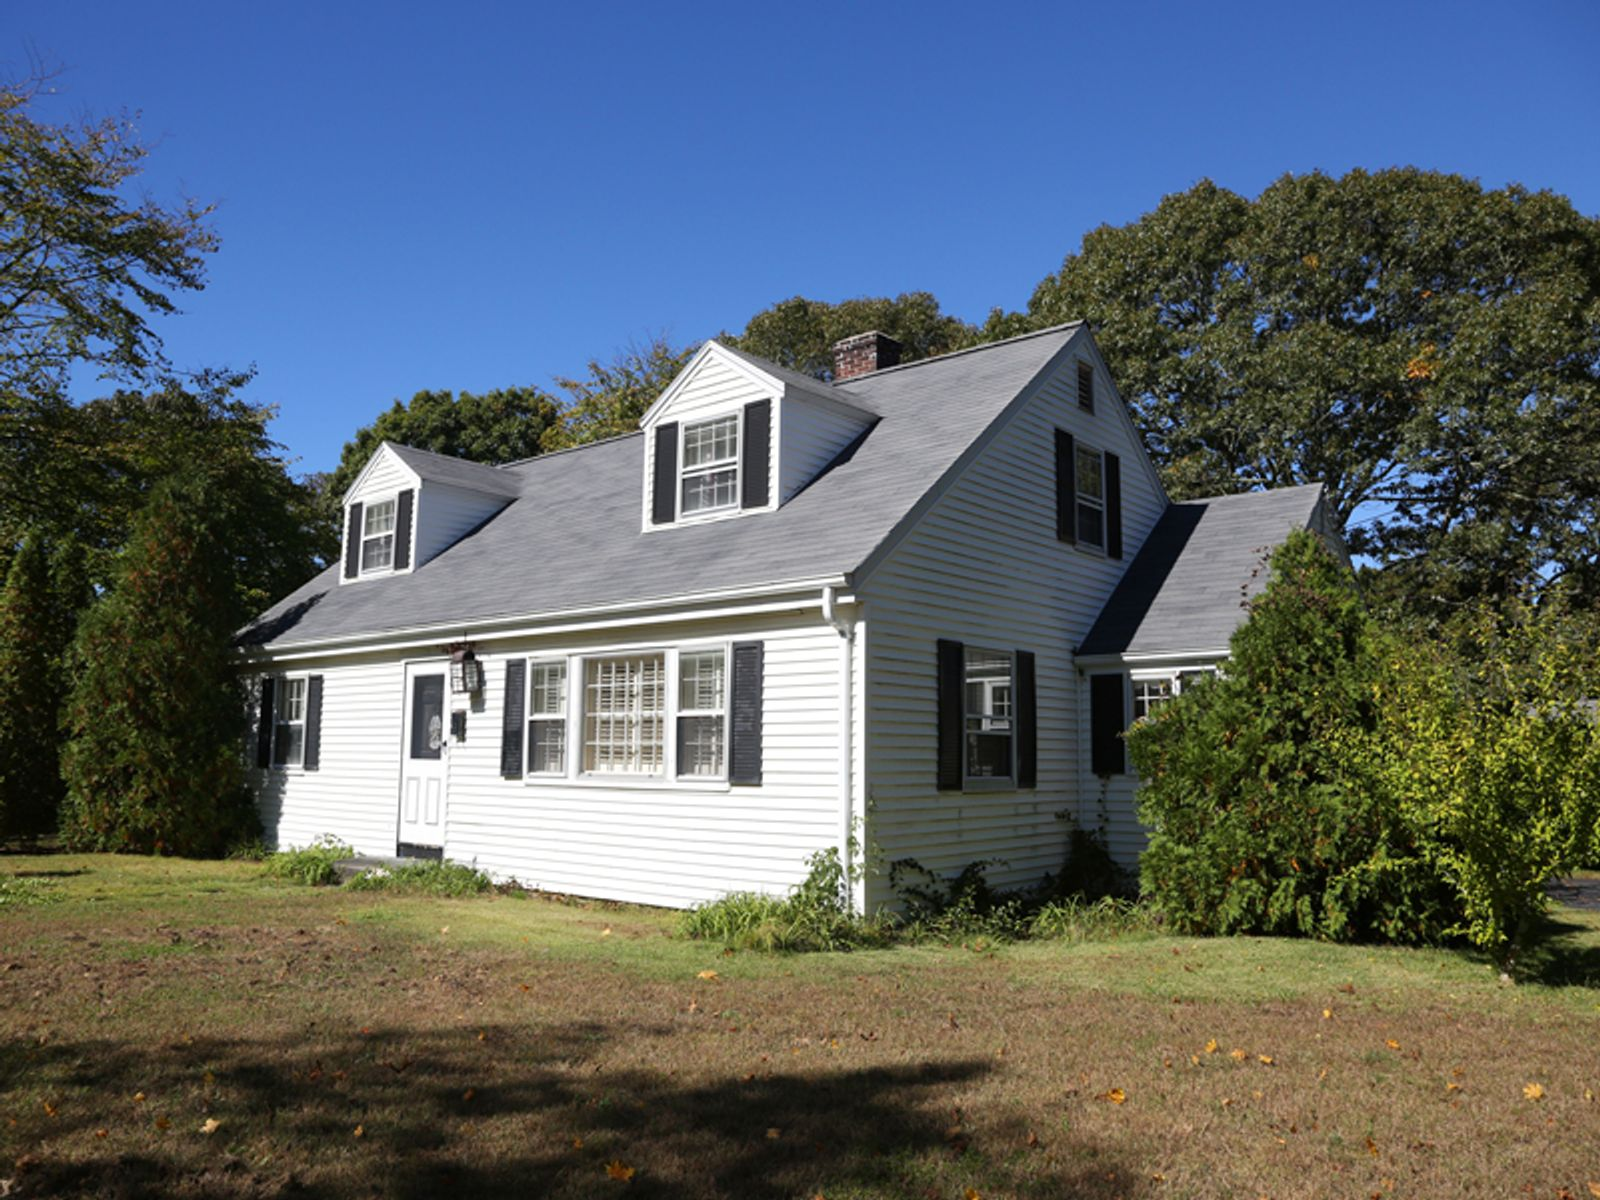 Charming Cape in Osterville Village, Osterville MA Single Family Home - Cape Cod Real Estate